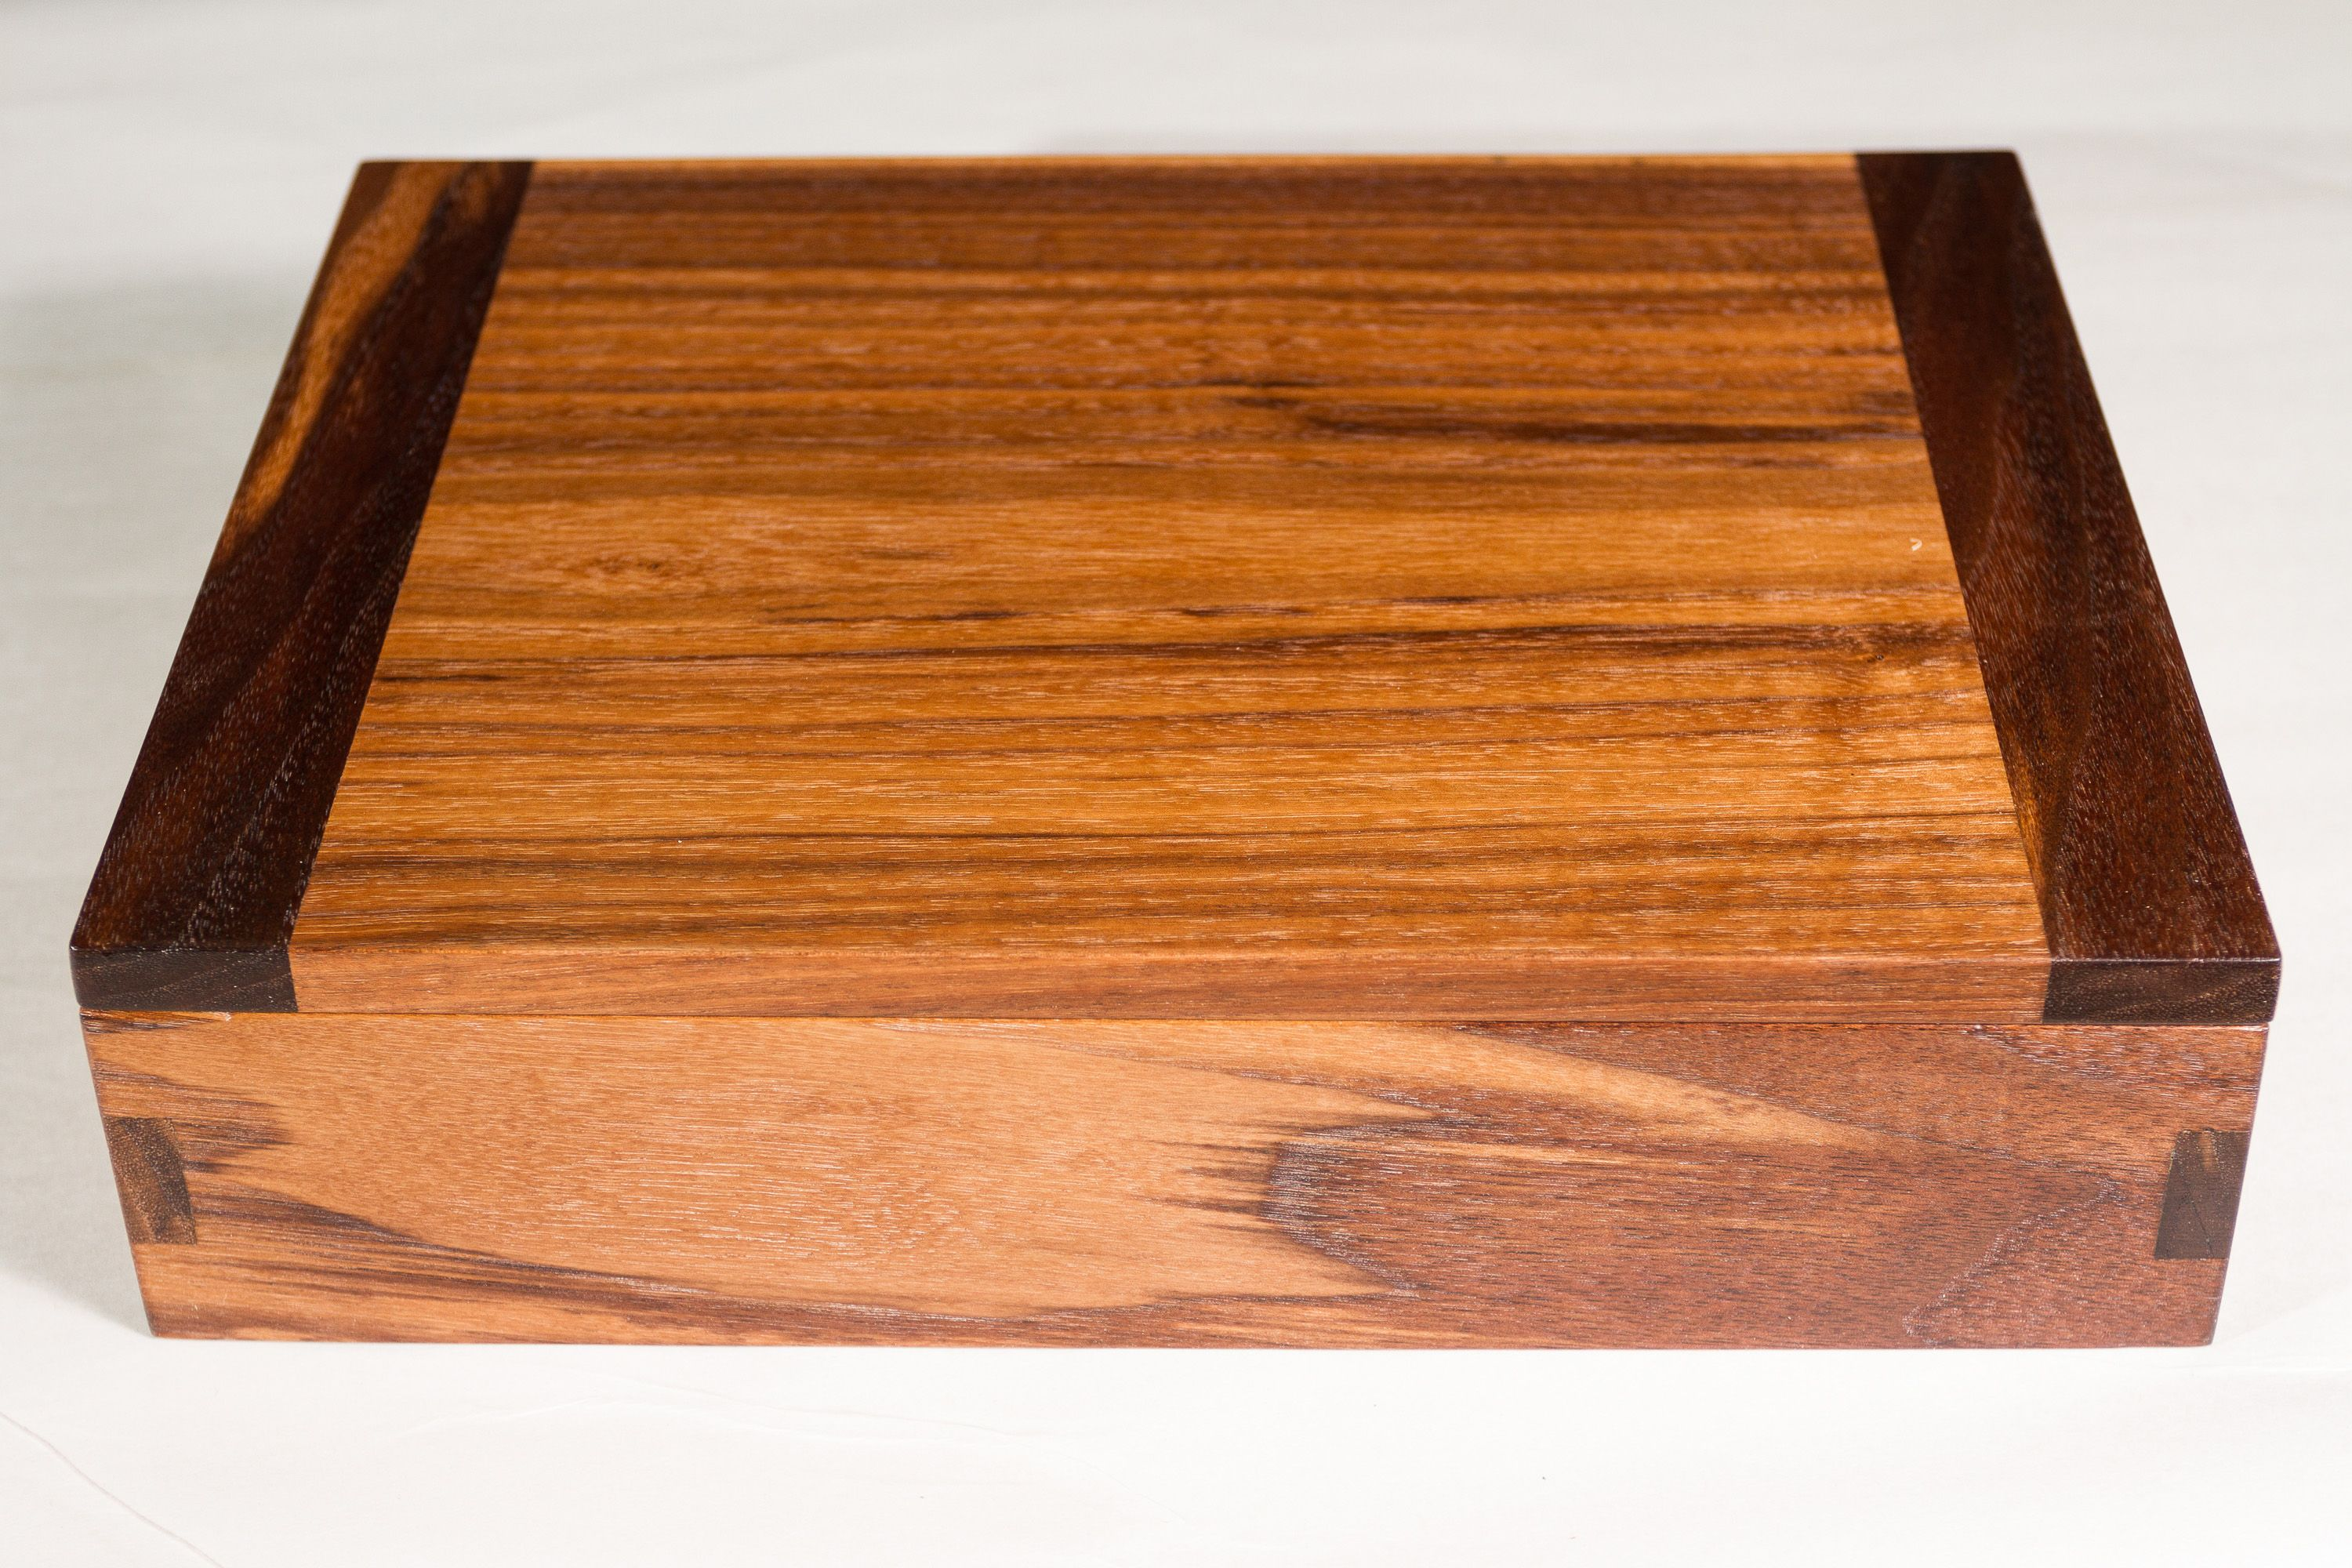 Walnut box with breadboard ends on the lid and flush cut finger joints.